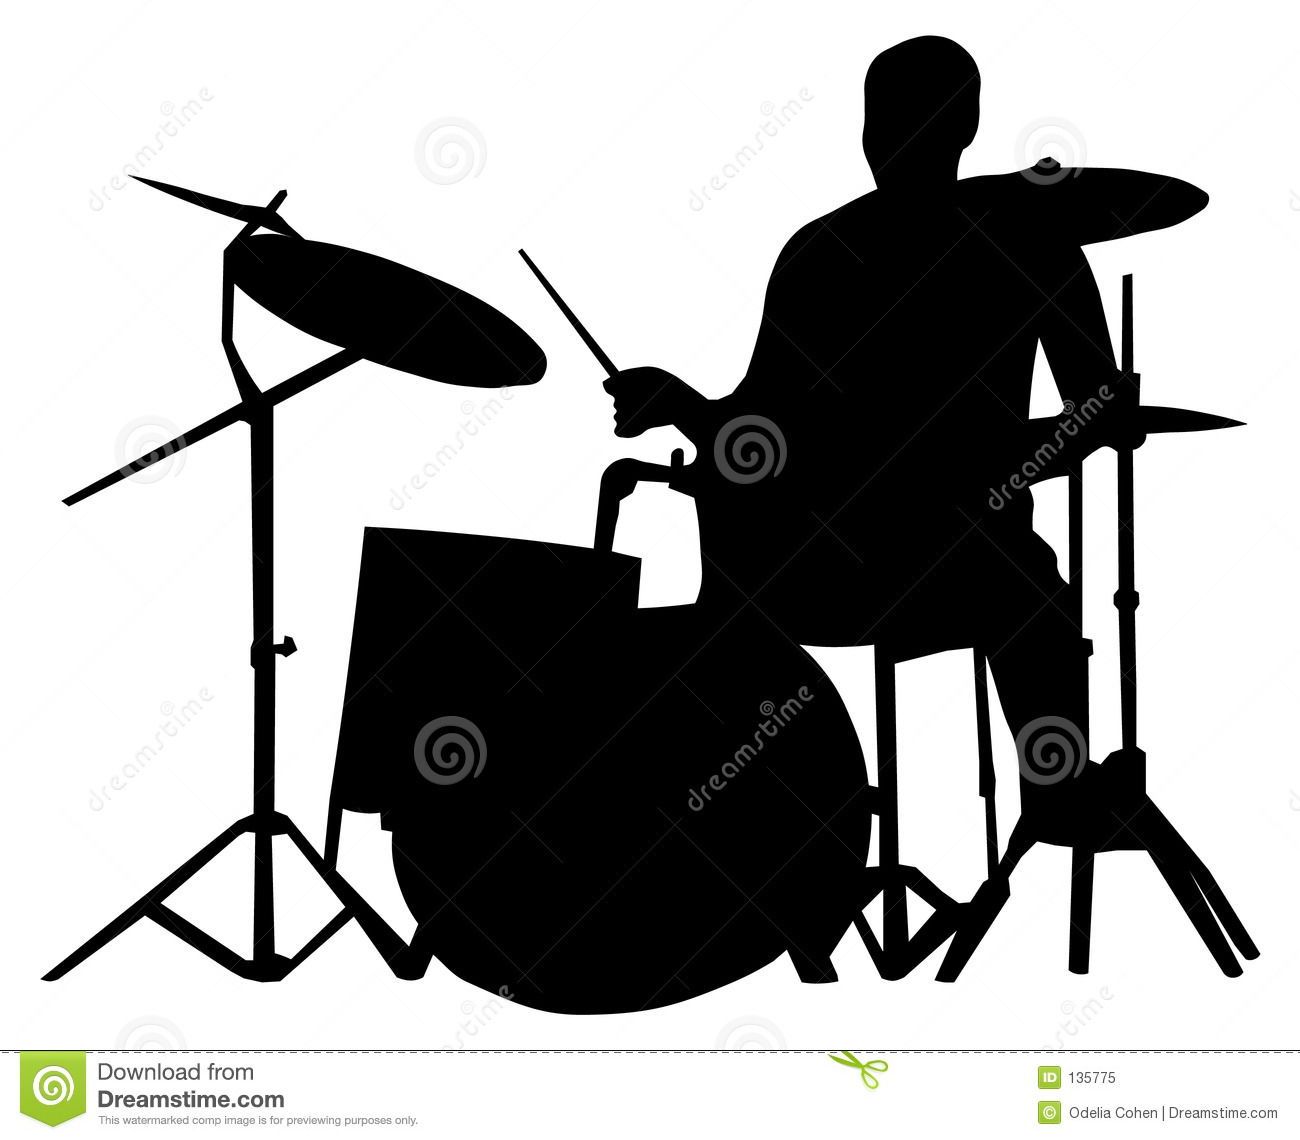 Drummer Silhouette Royalty Free Stock Photo - Image: 135775